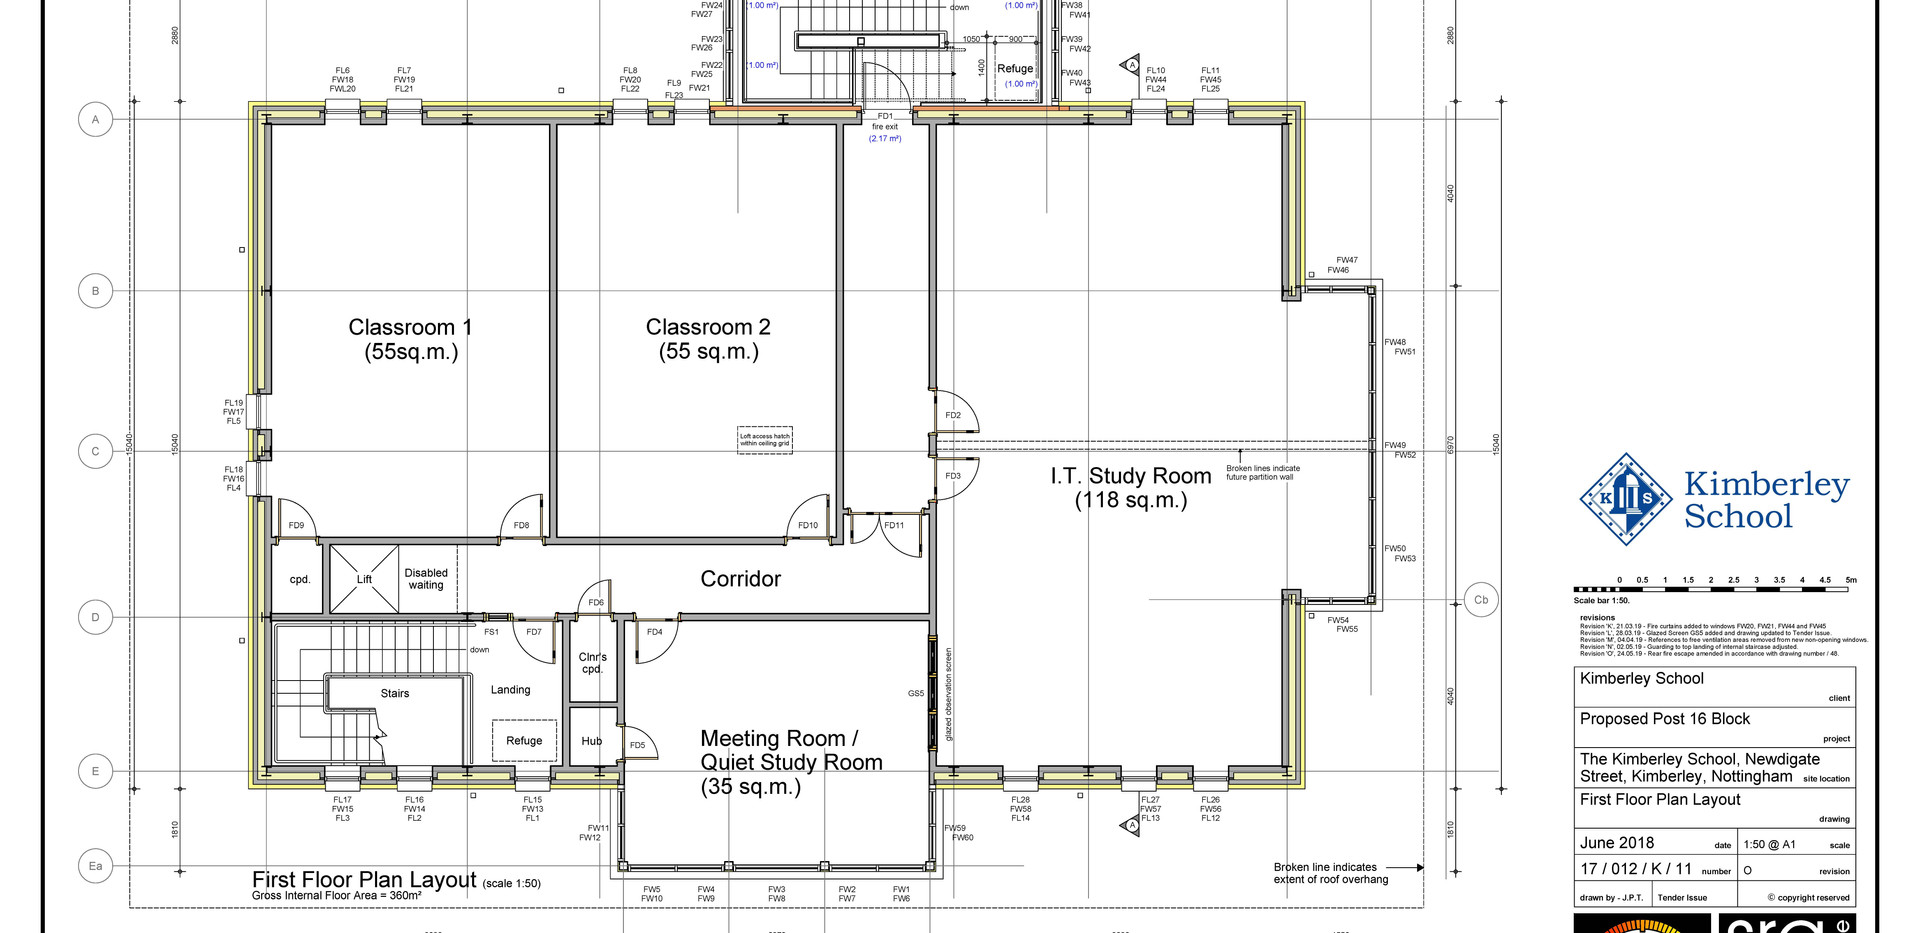 11O_First Floor Plan Layout.jpg